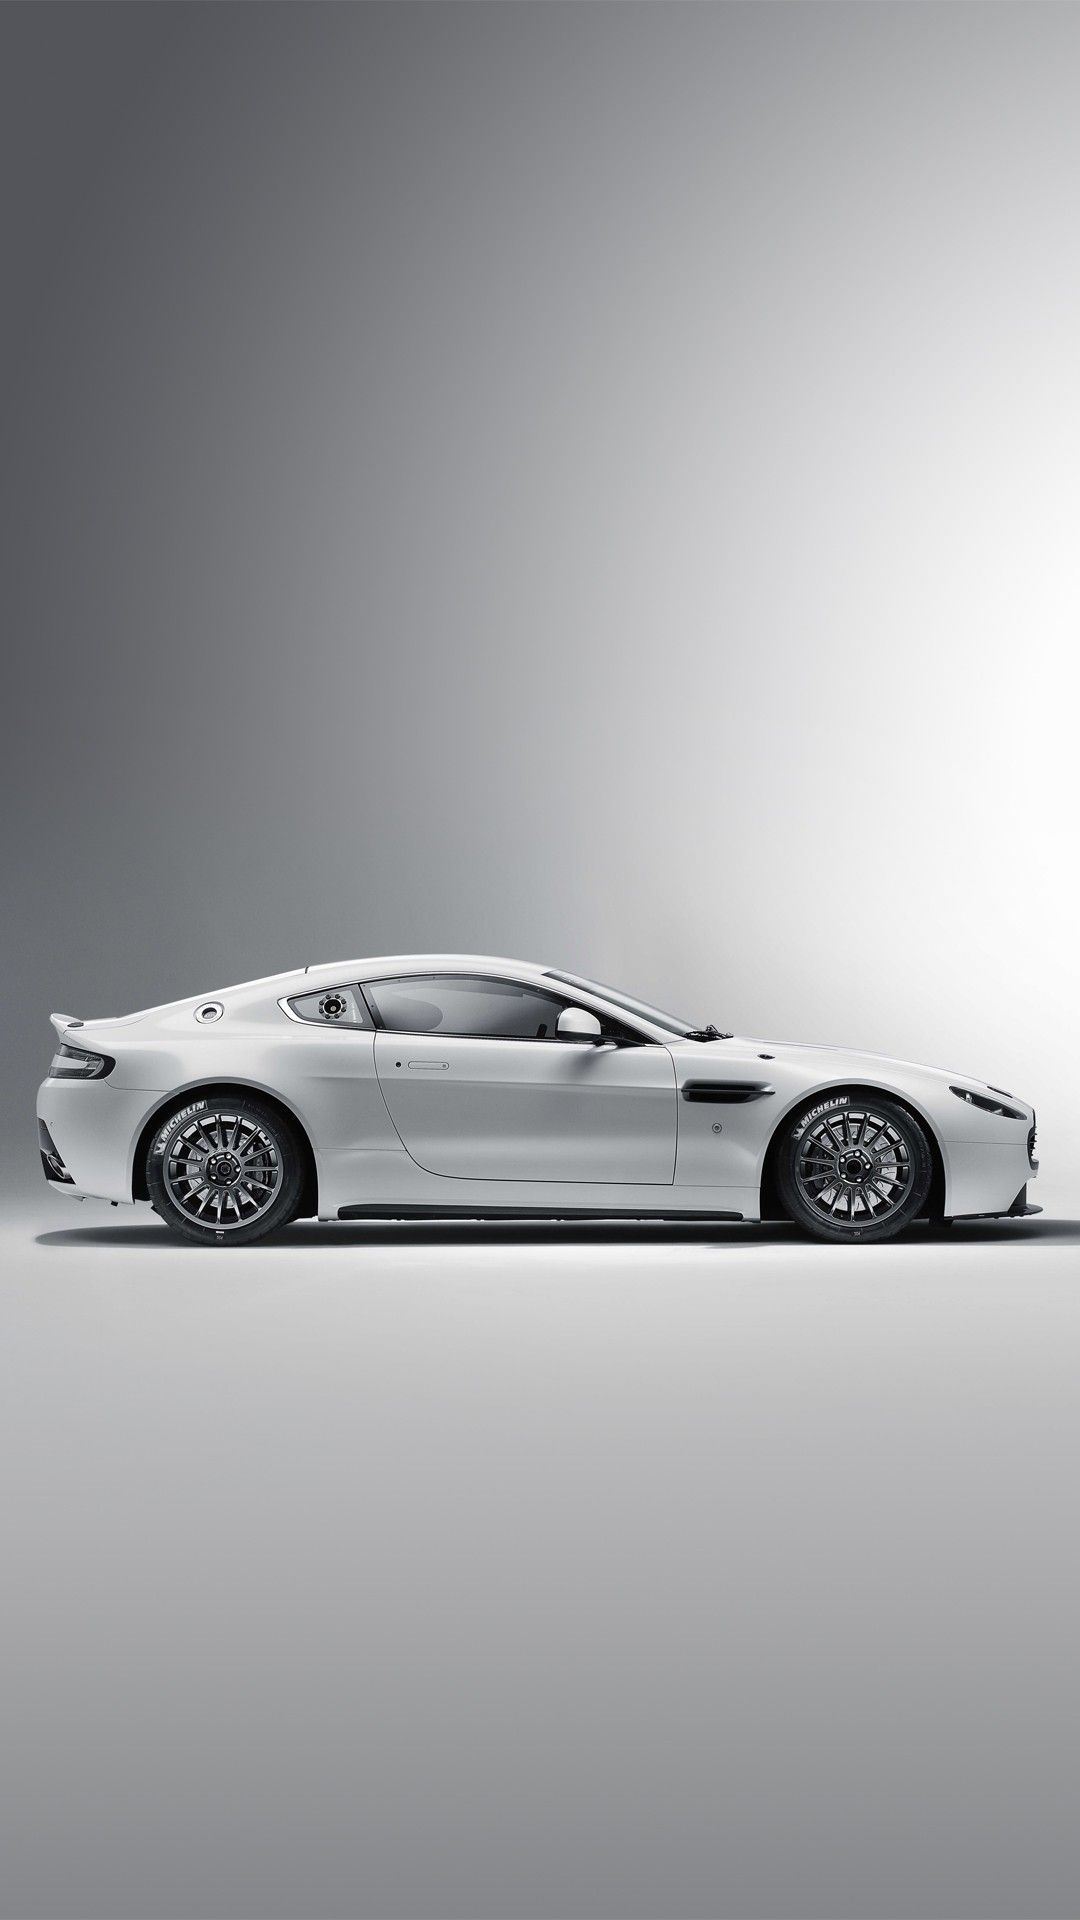 Iphone Lock Screen Iphone Aston Martin Logo Wallpaper